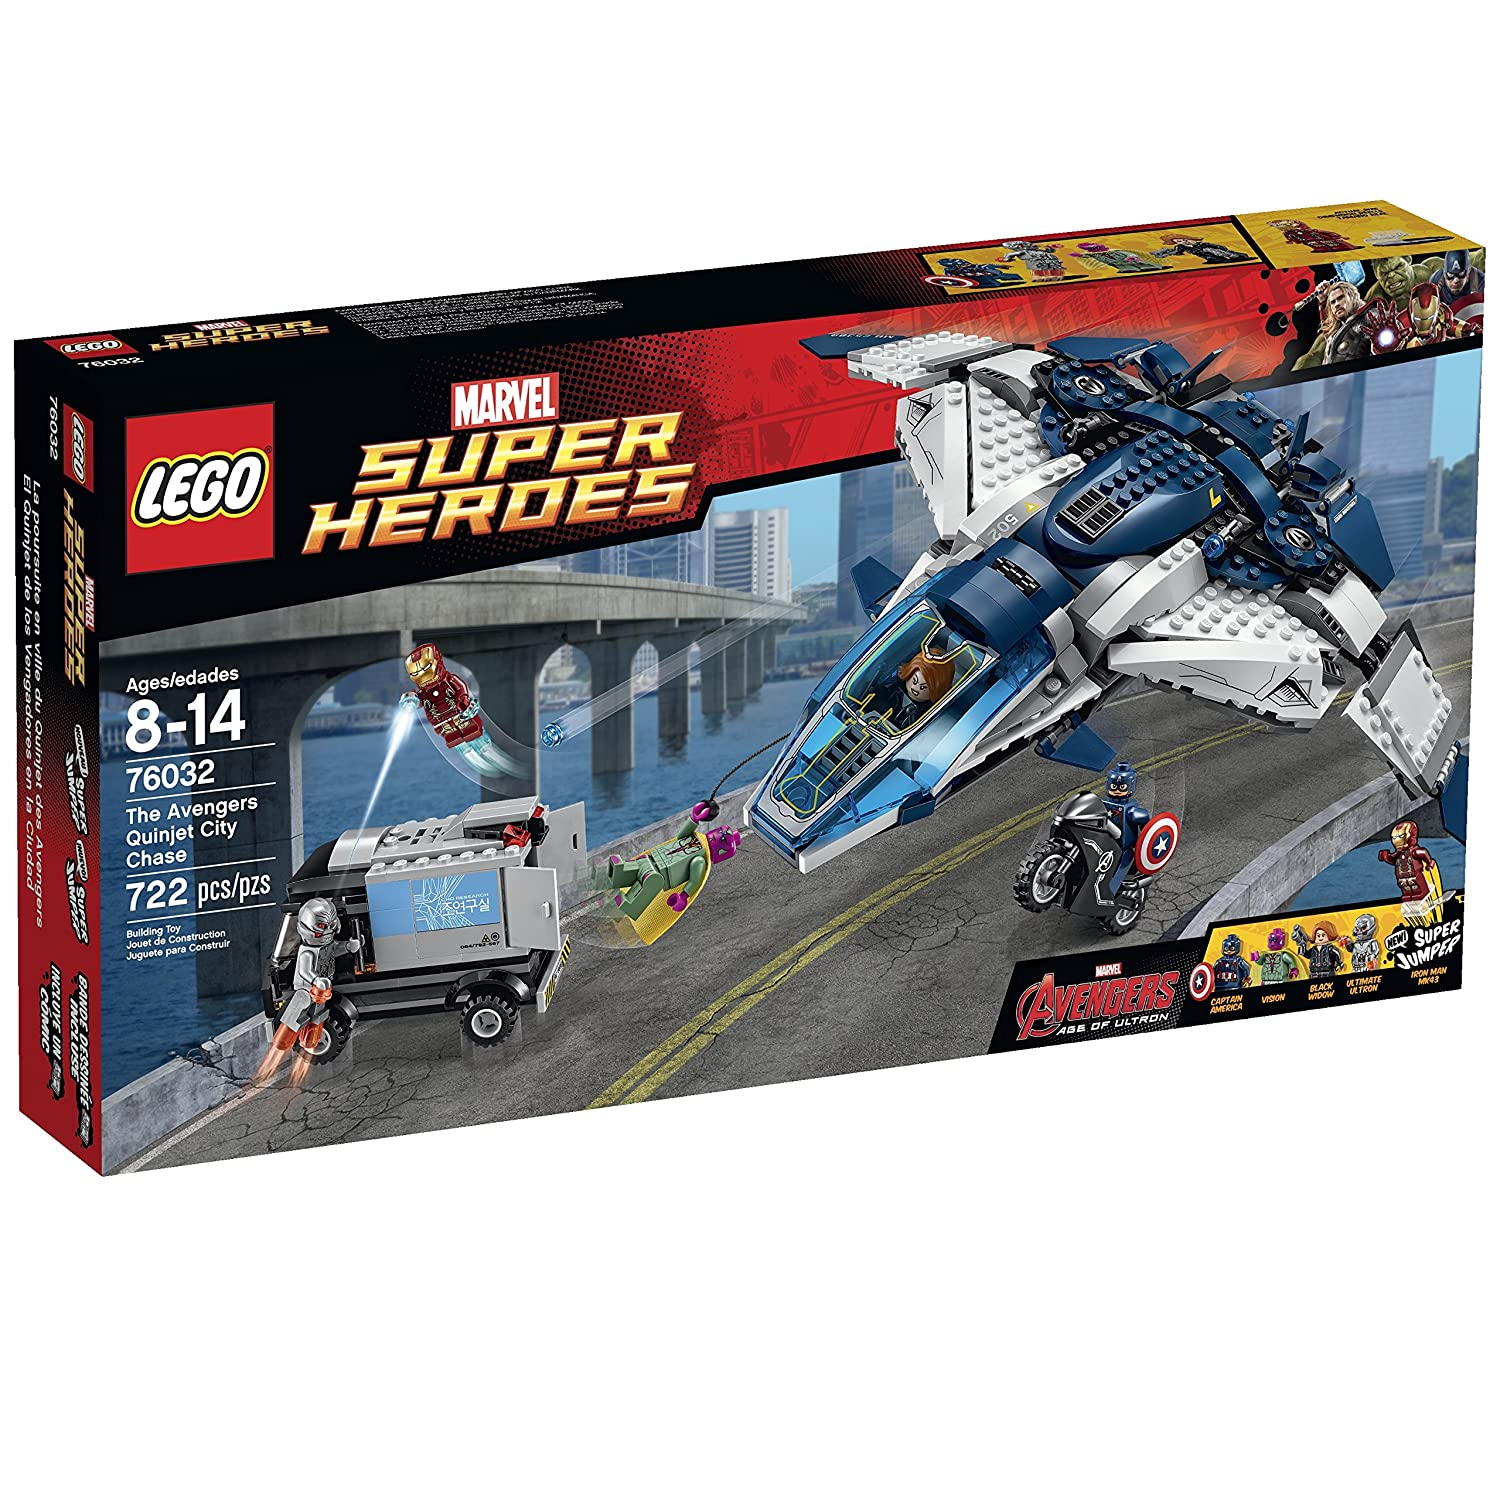 Top 9 Best LEGO Captain America Sets Reviews in 2019 9